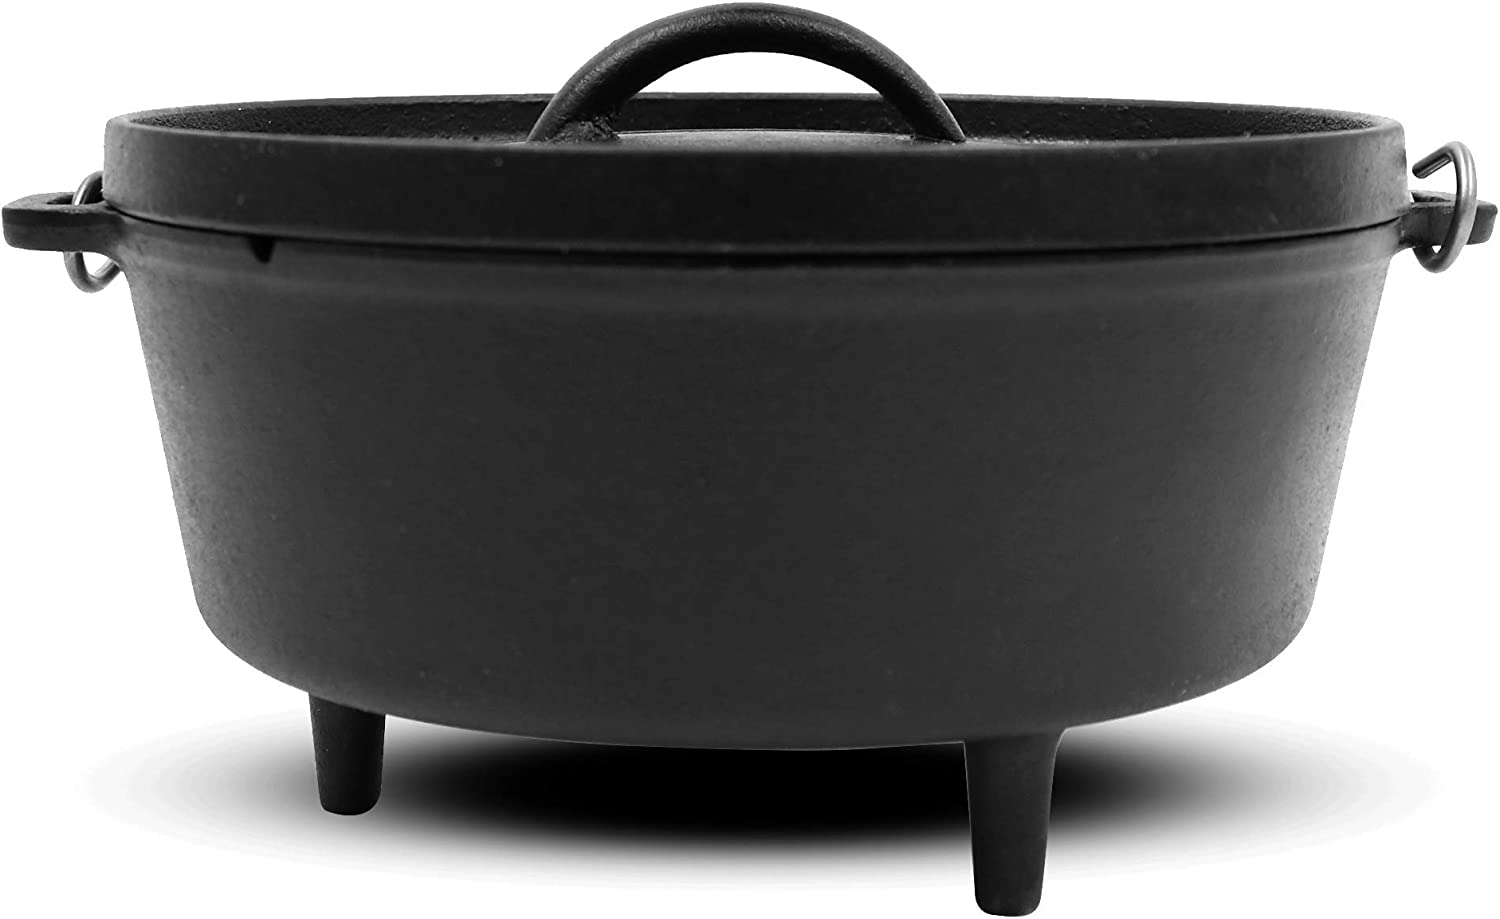 "Pit Boss 68009 10"" Cast Iron Dutch Oven, Black"